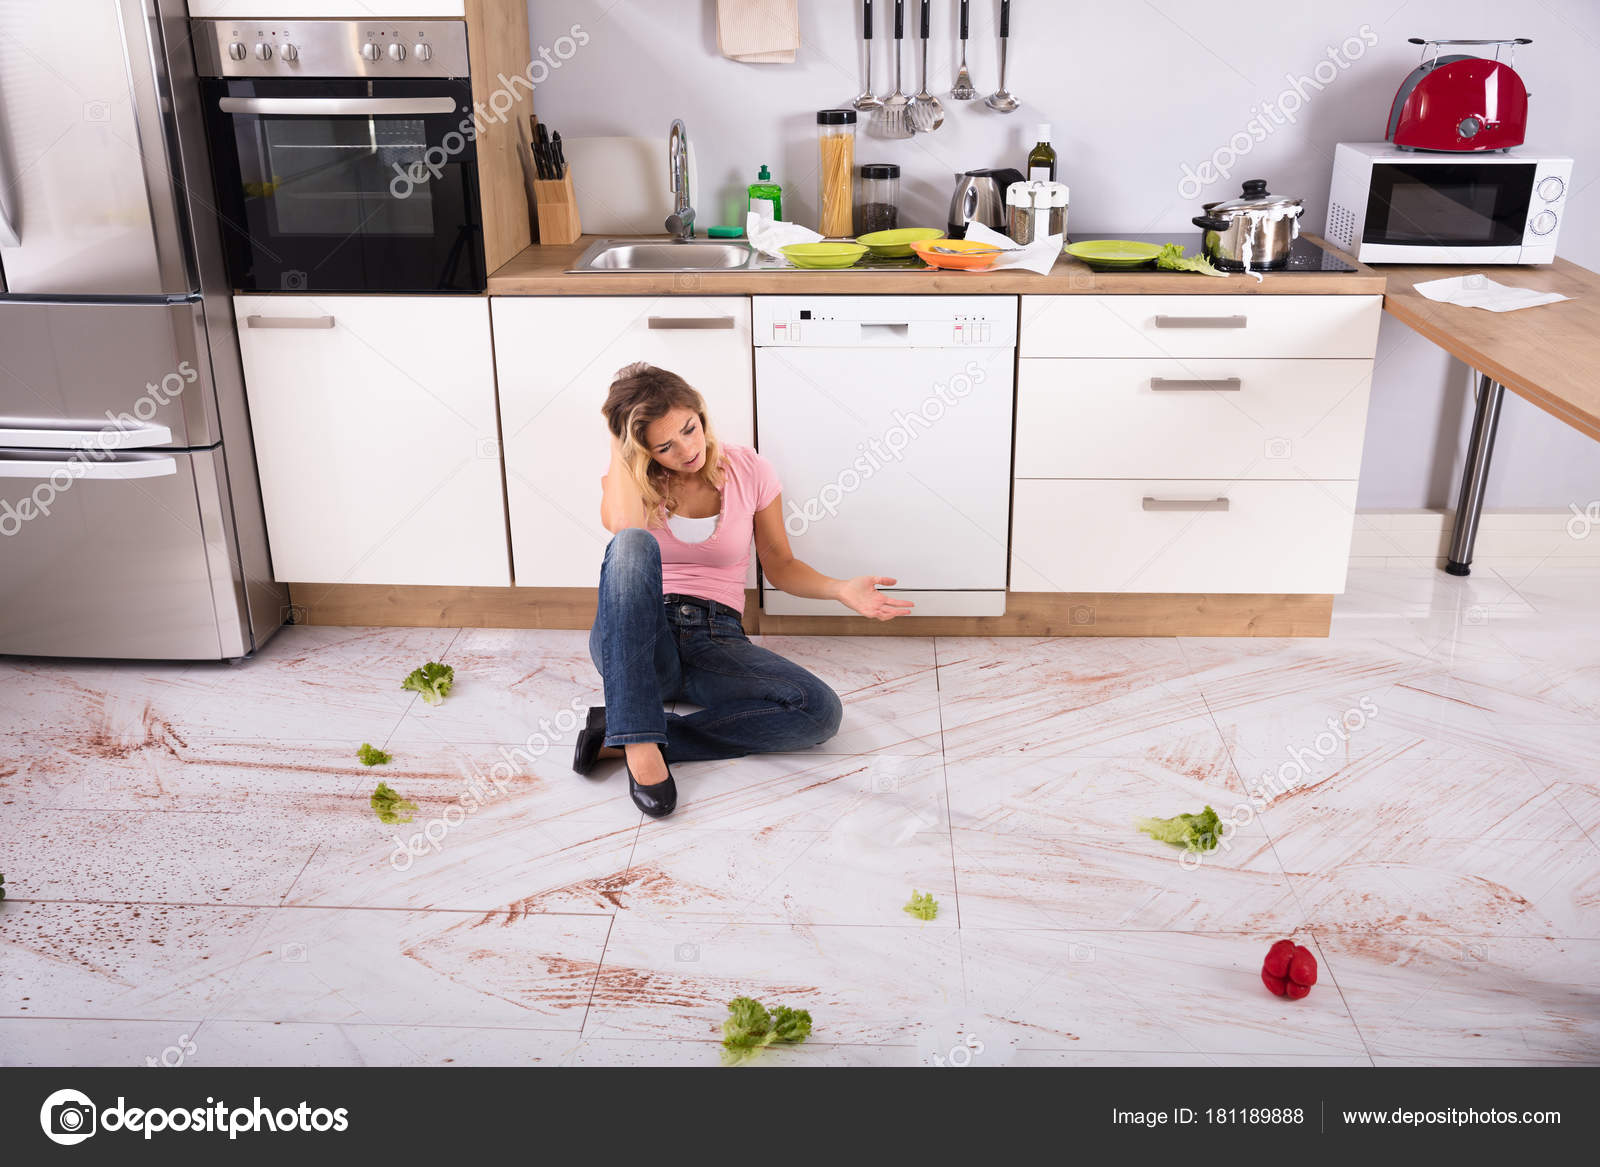 Unhappy Young Woman Sitting Dirty Kitchen Floor Home — Stock Photo ...